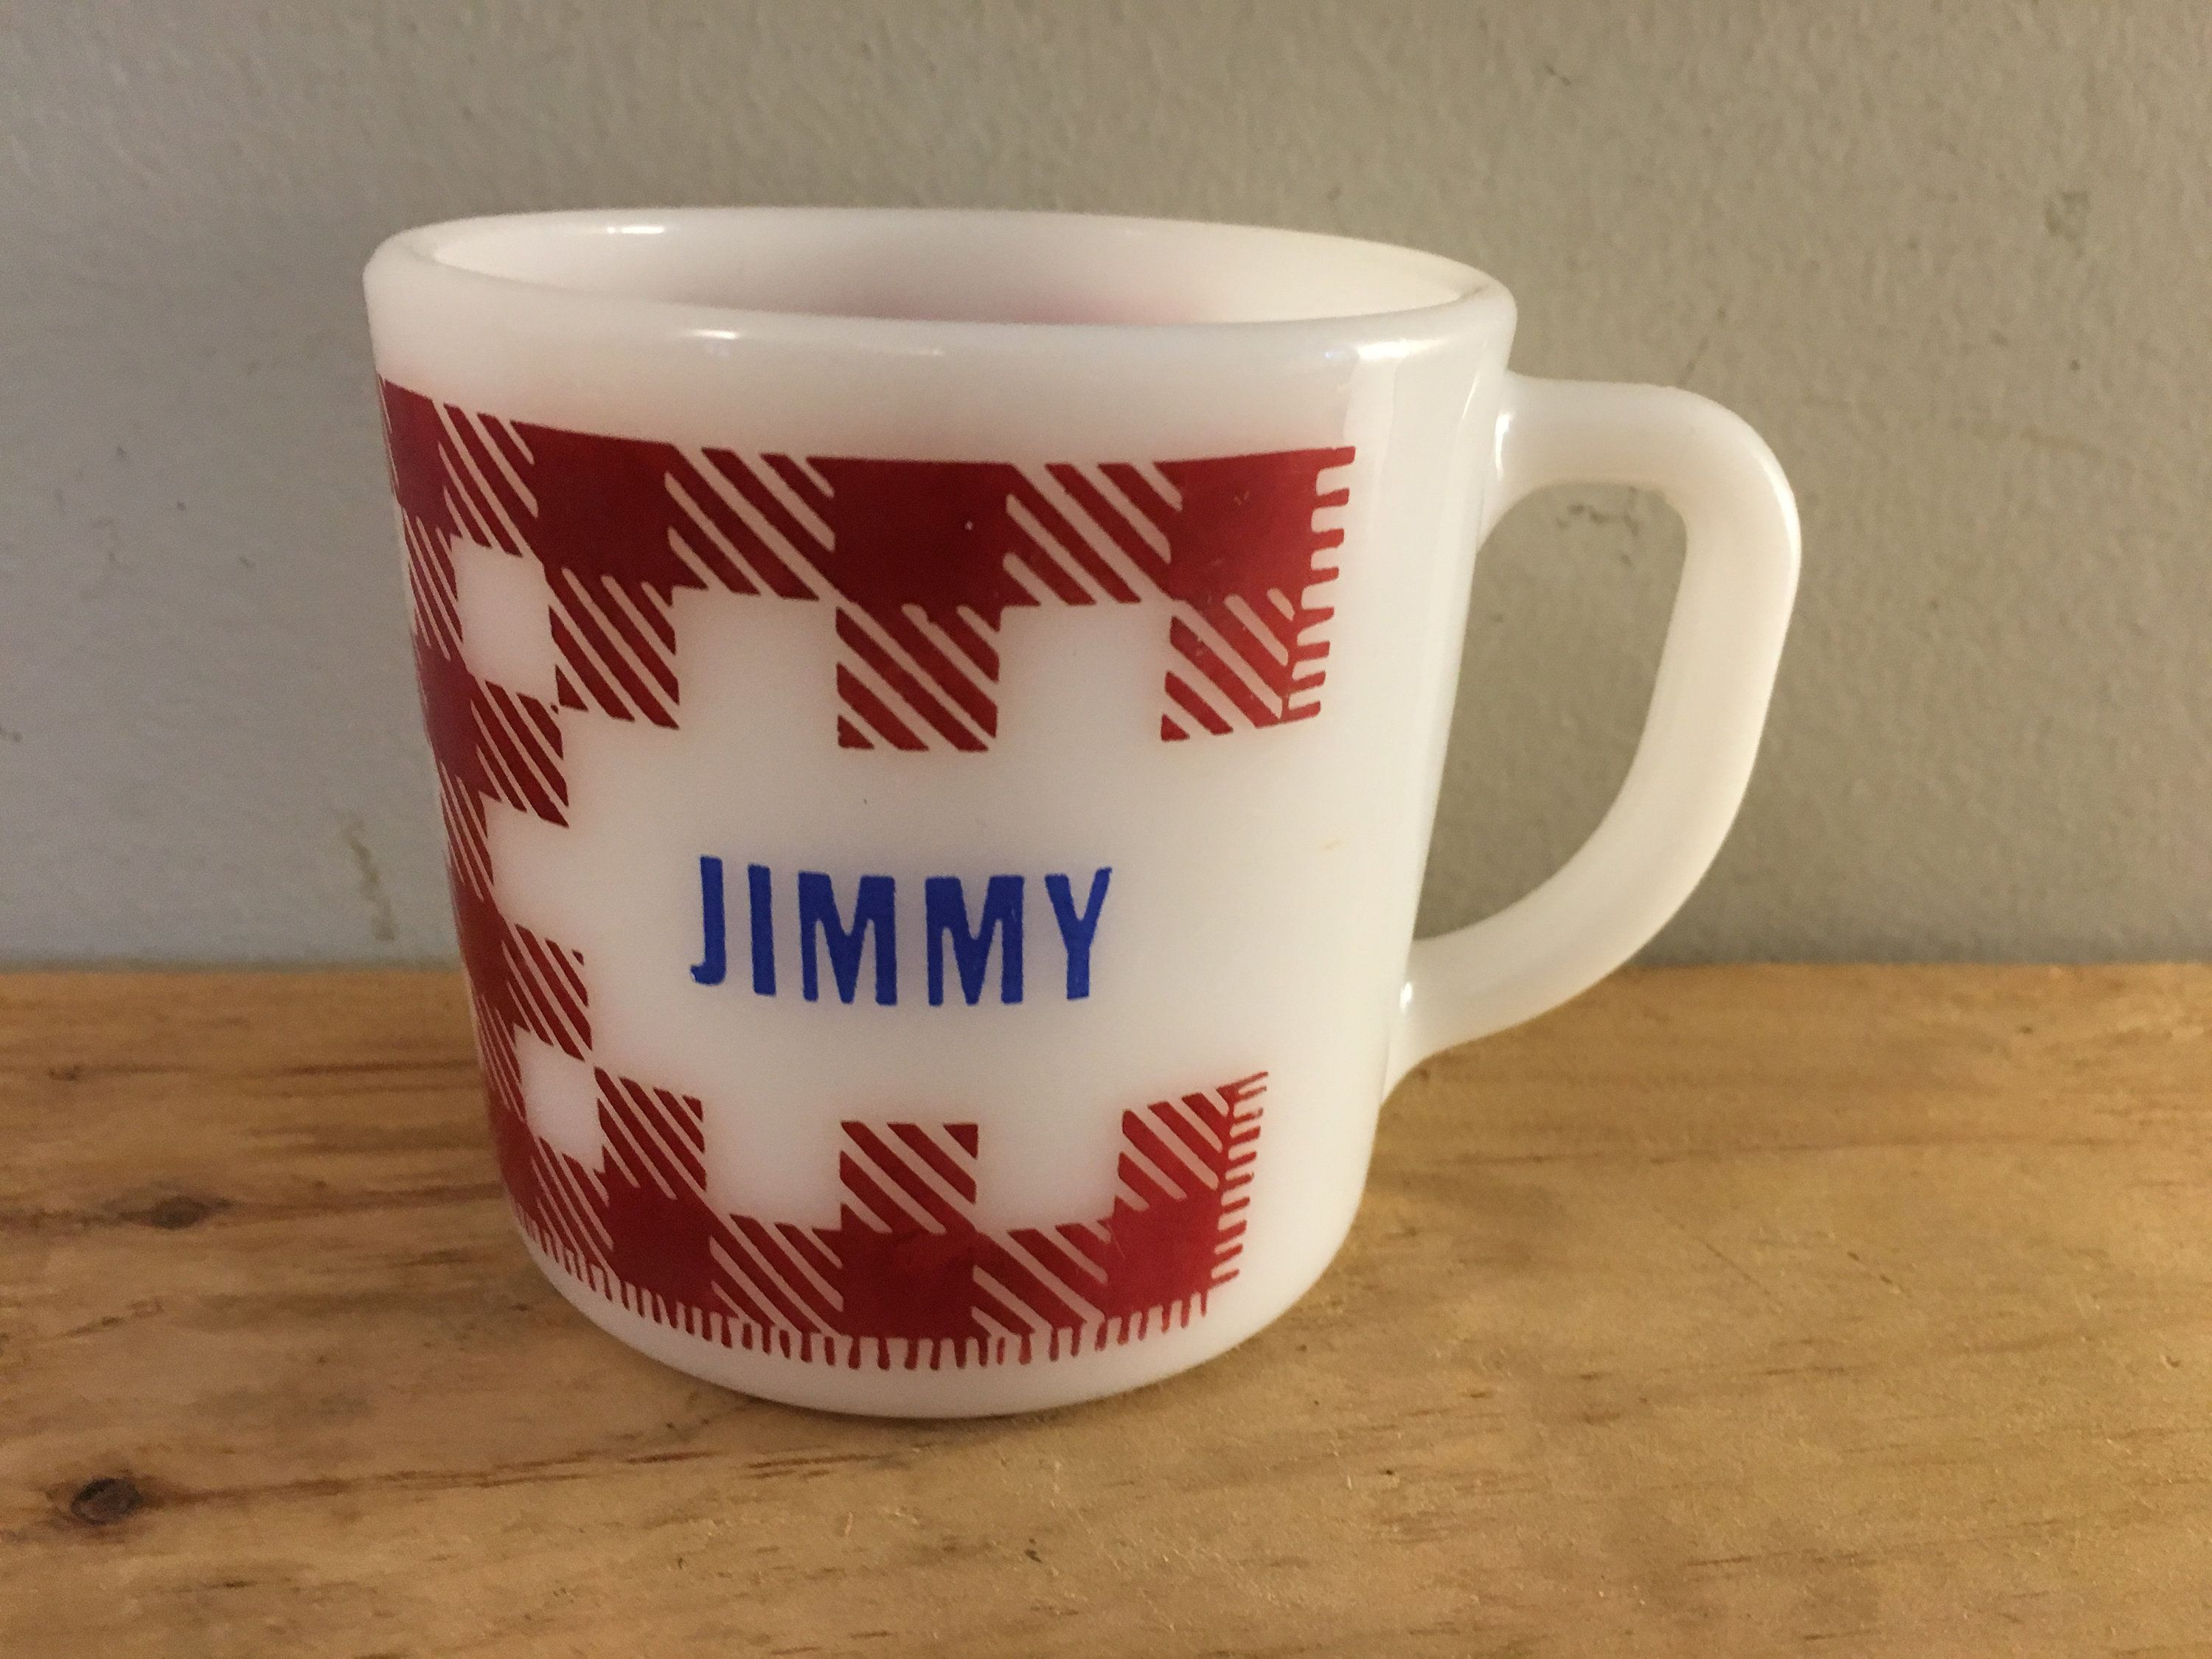 Have you seen Jimmy? I have his mug....Vintage JIMMY Milk